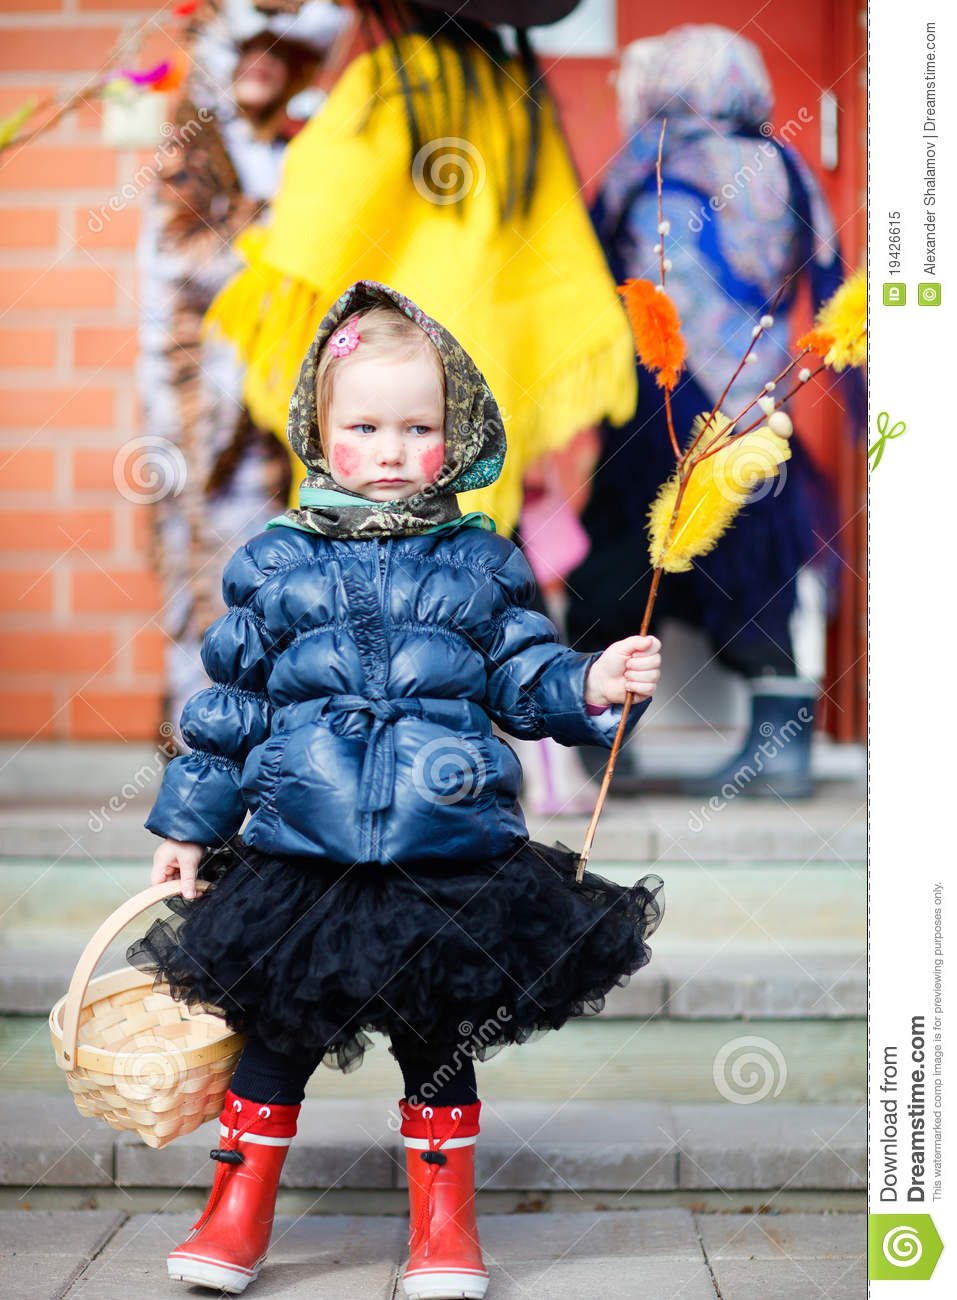 Easter Finnish Traditions Royalty Free Stock Photo - Image: 19426615